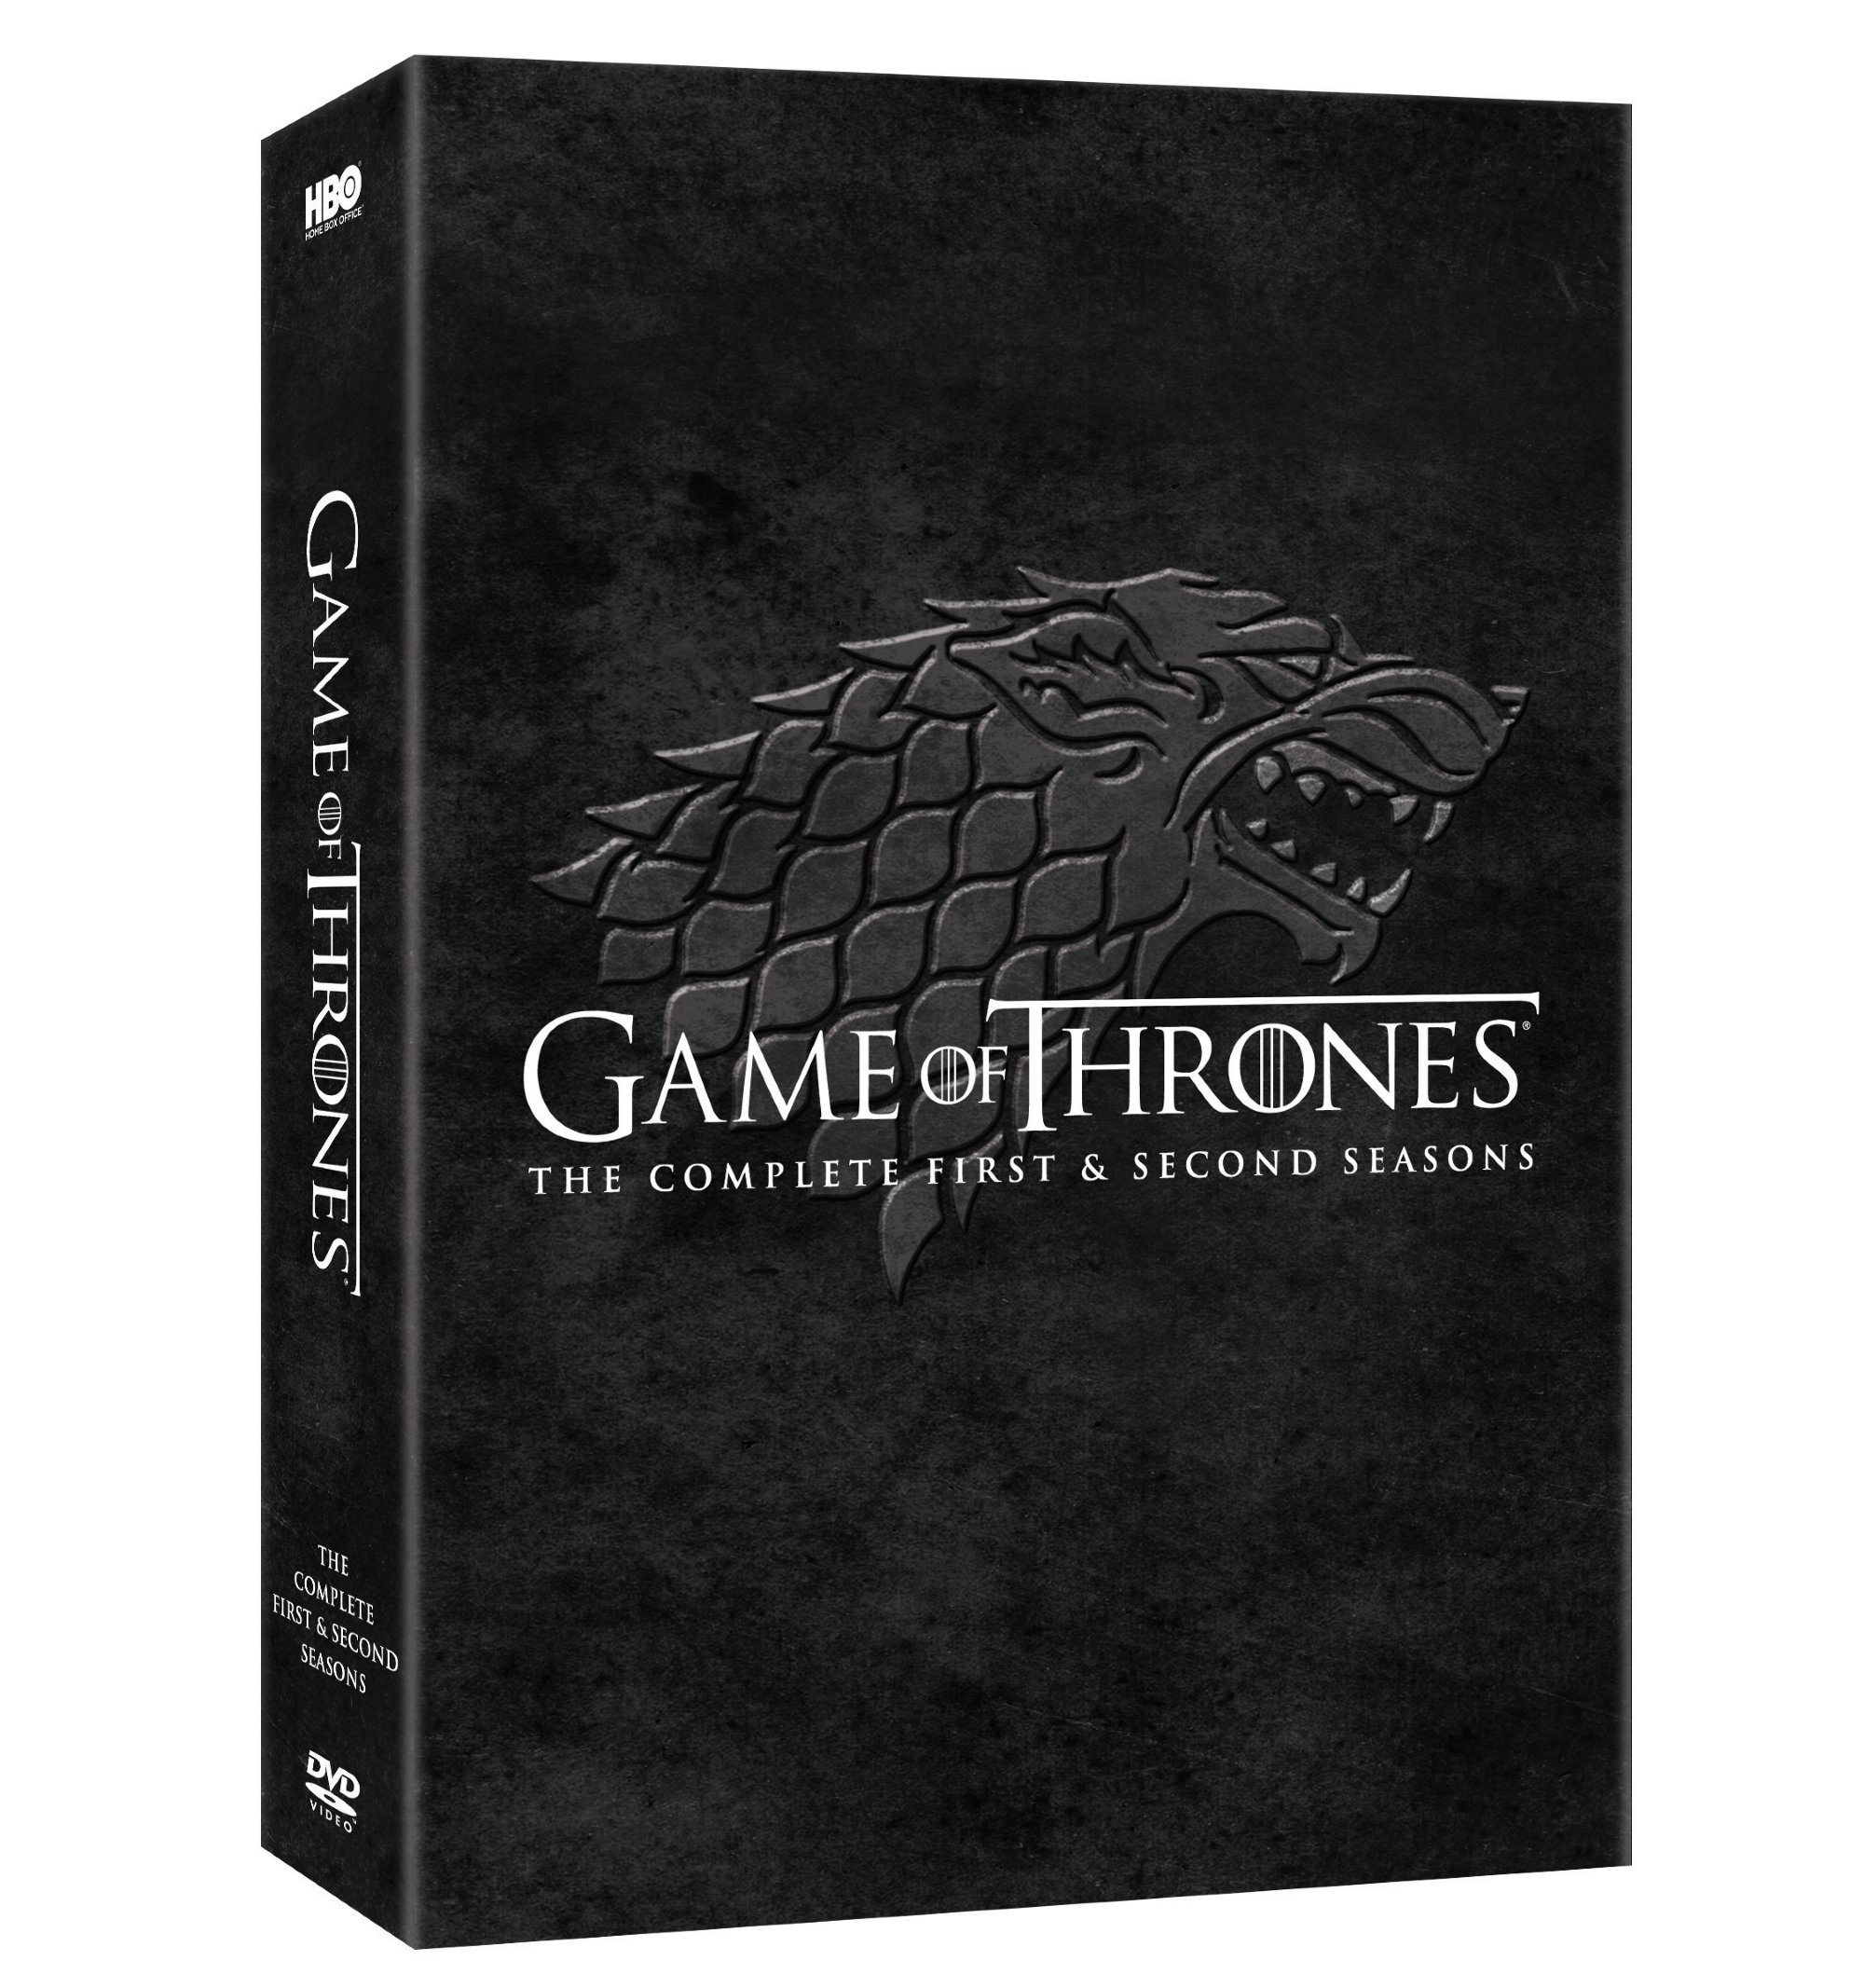 Game of Thrones: The Complete Seasons 1 & 2